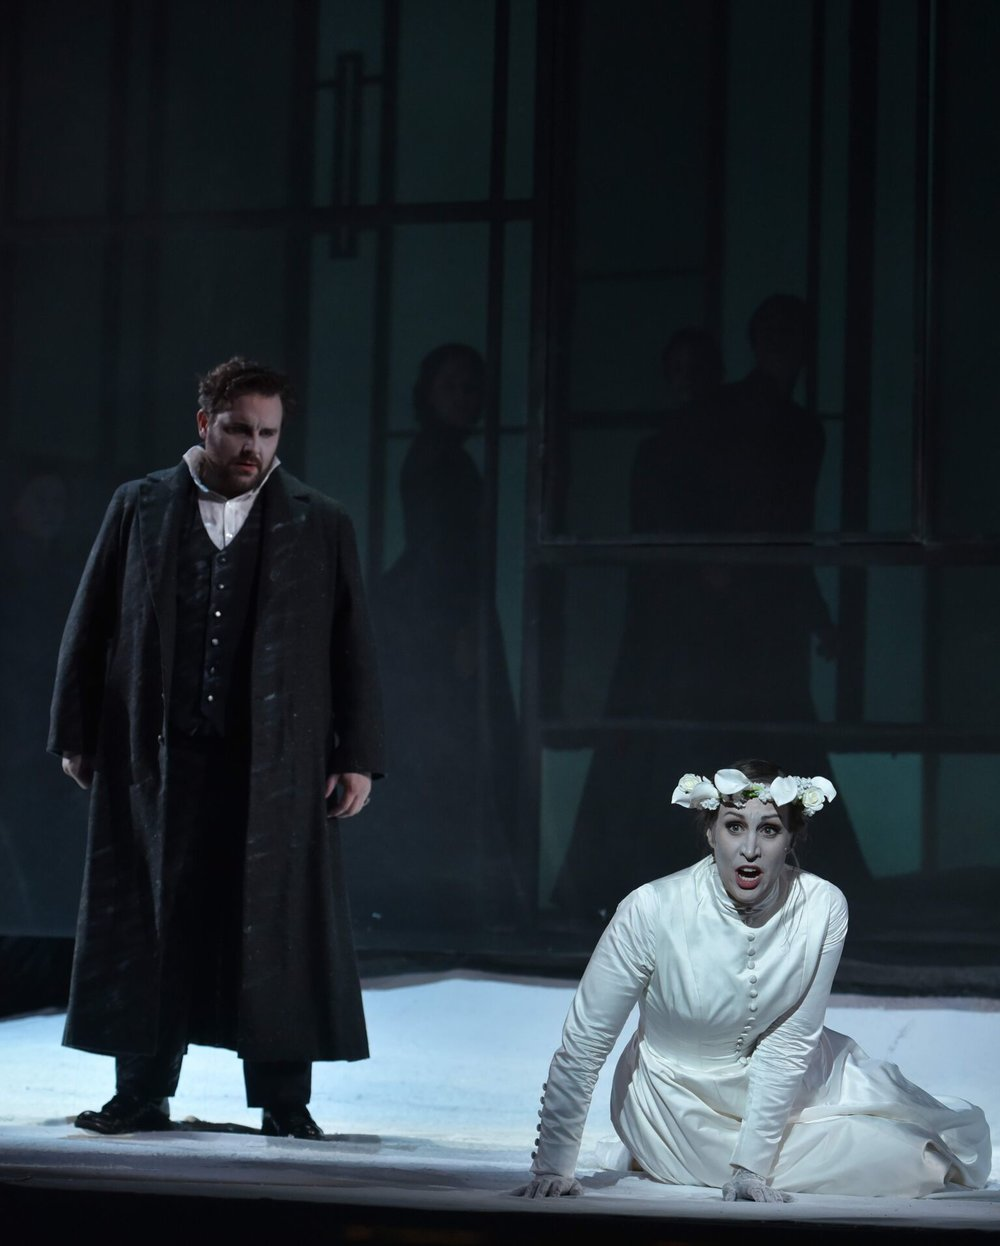 Kim Jong Il staged the opera Eugene Onegin 08.06.2009 56